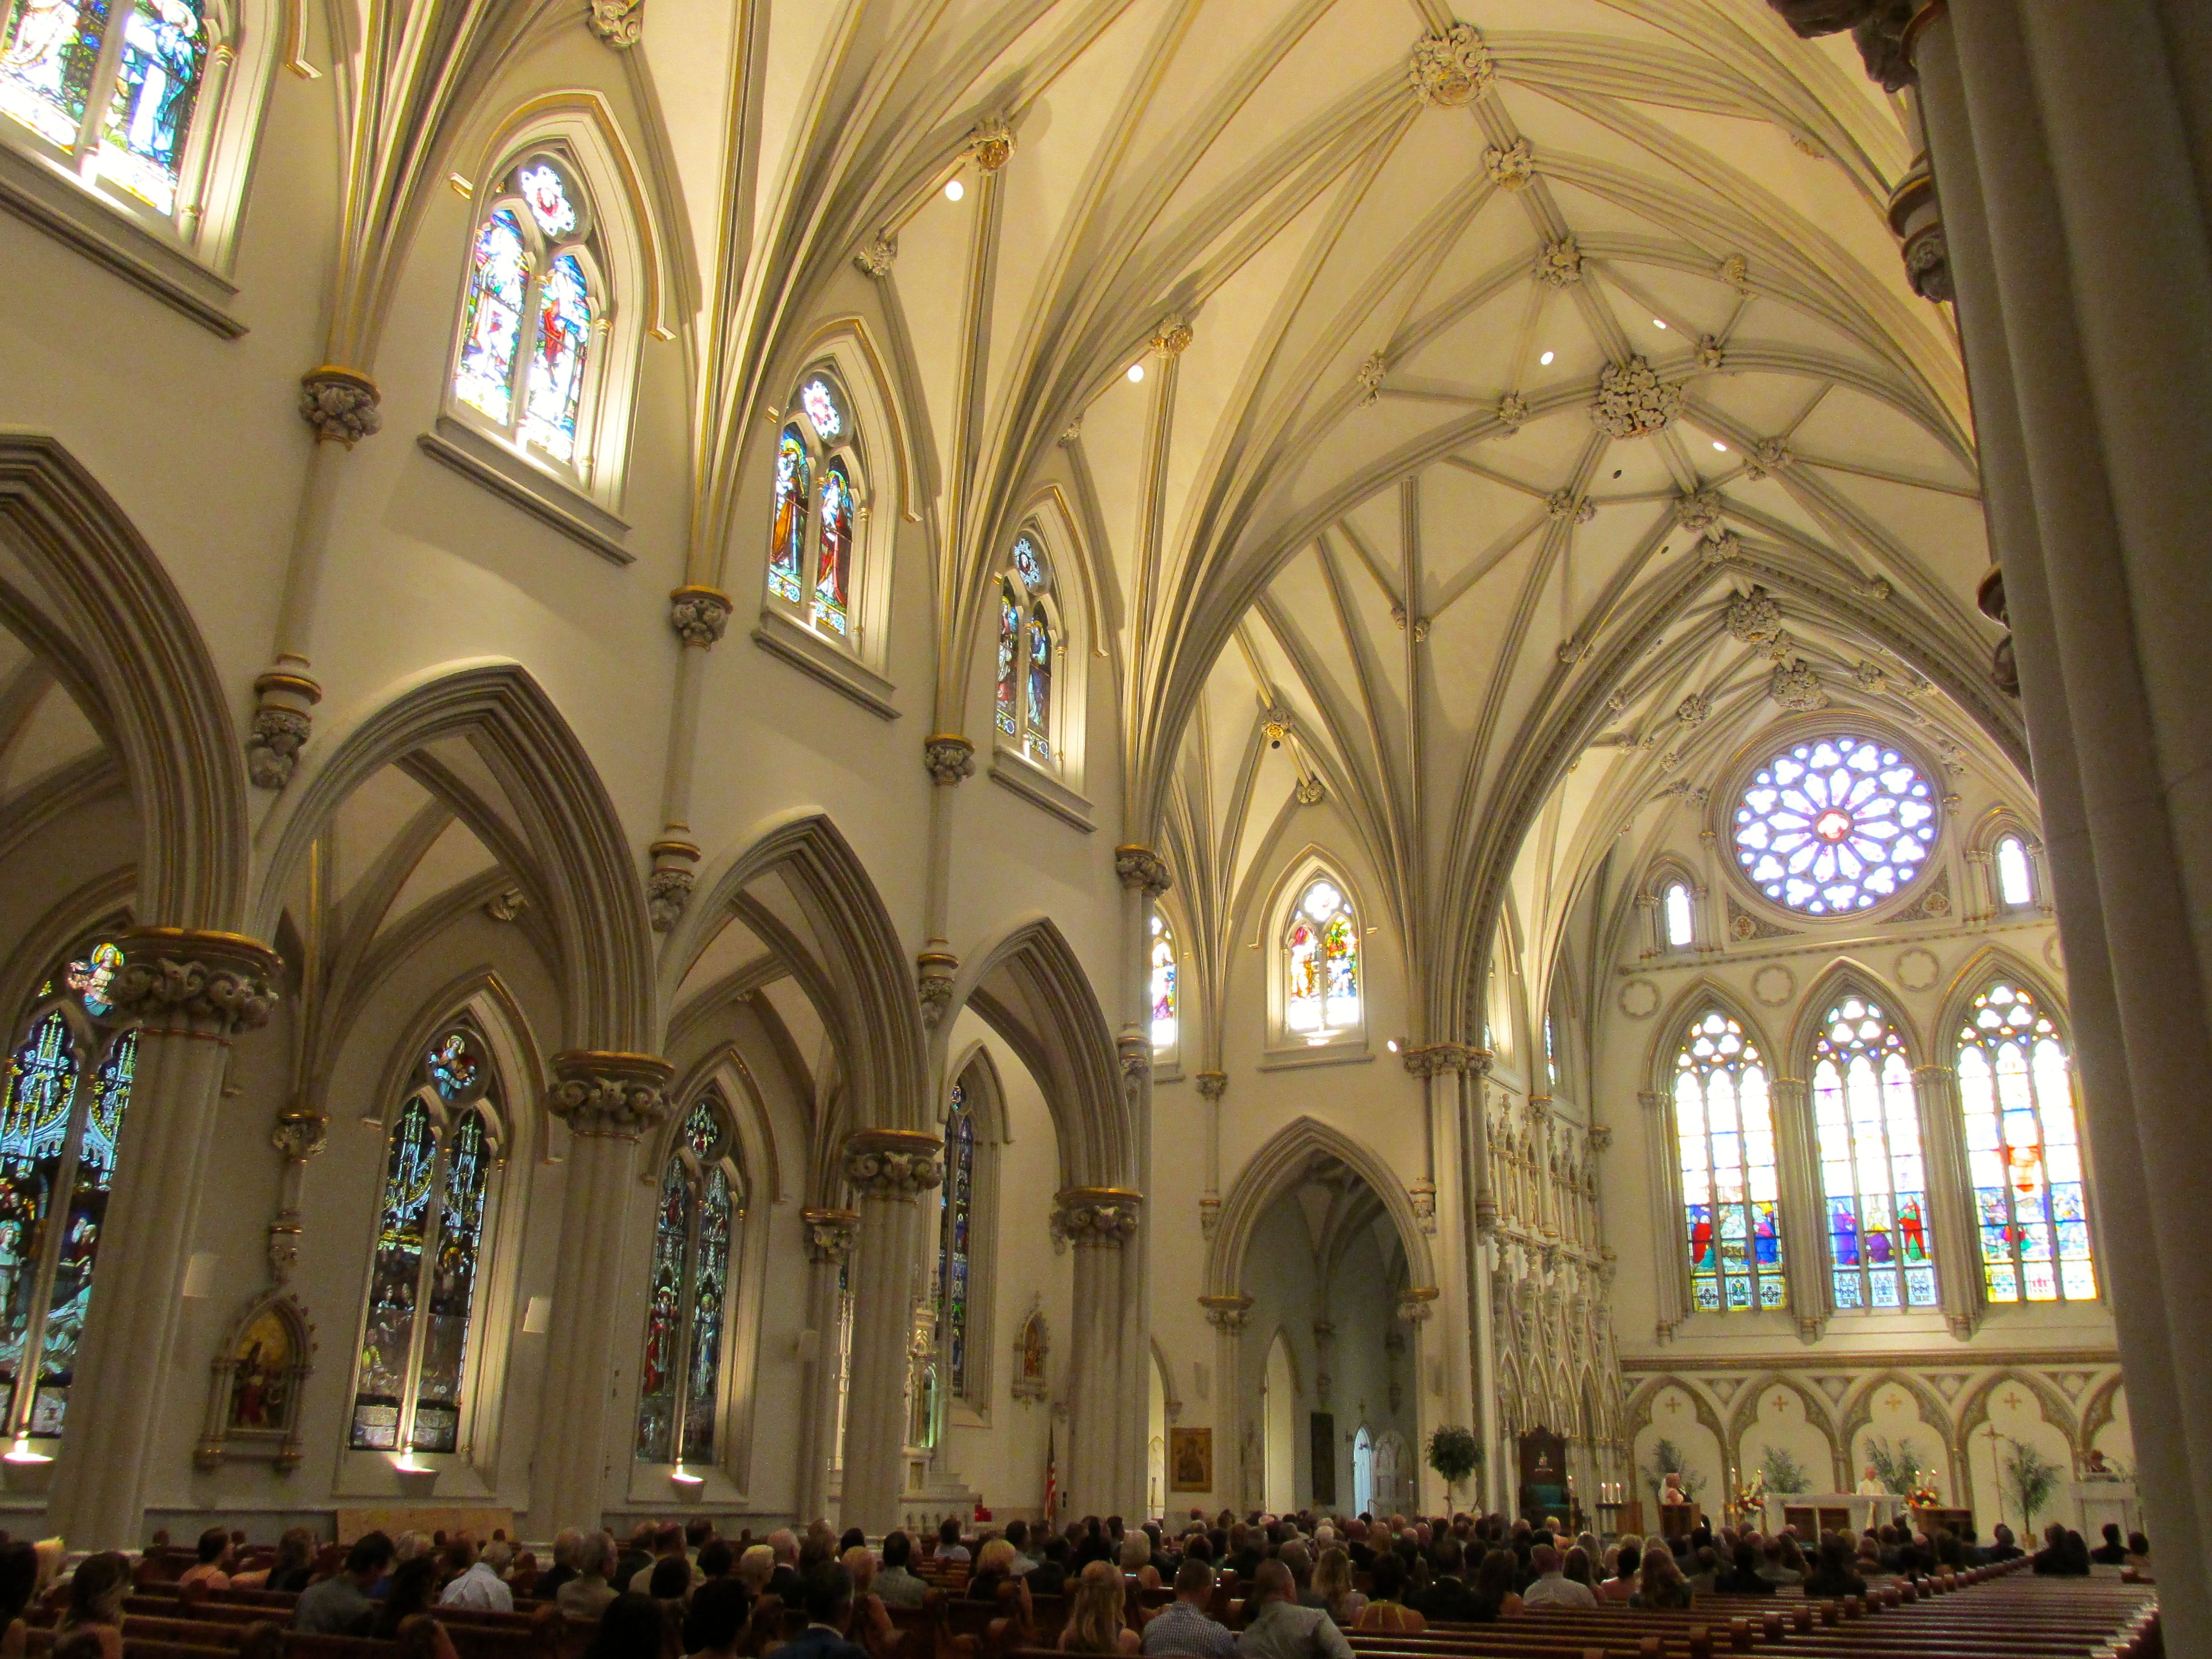 Inside St. Joseph's Cathedral - another wedding